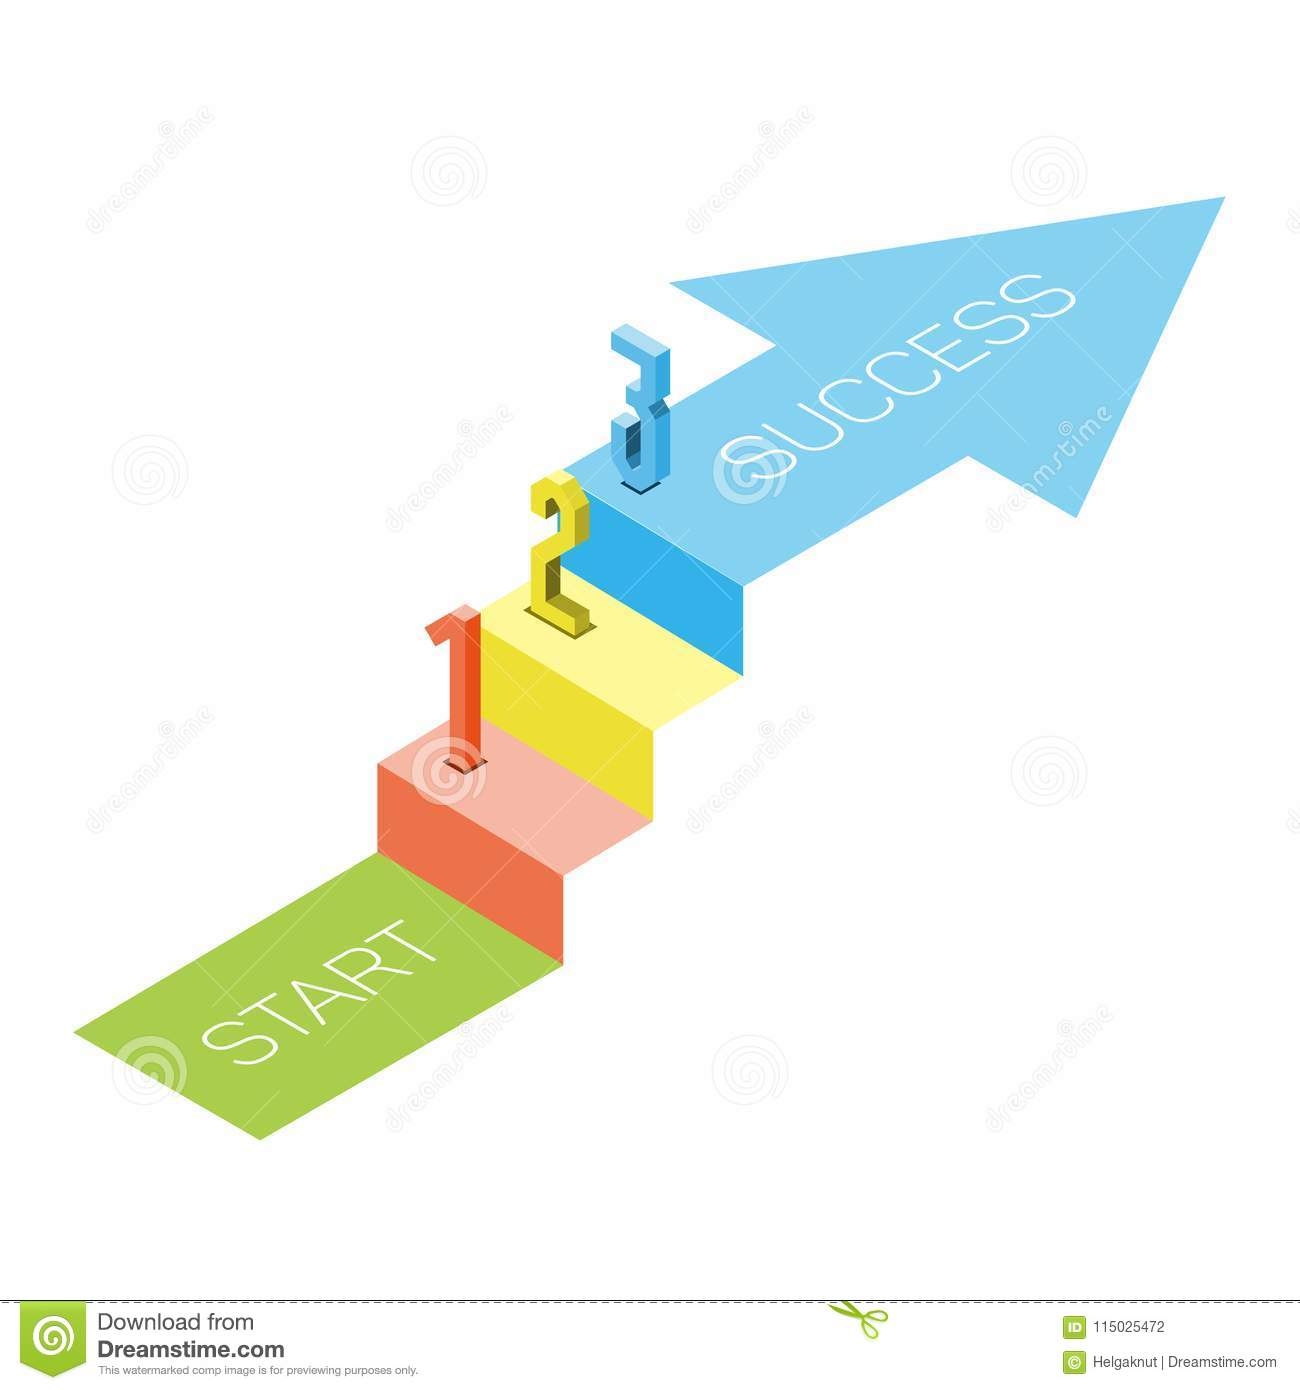 1 2 3 Steps Stair With Arrow Isometric View Infographic Concept